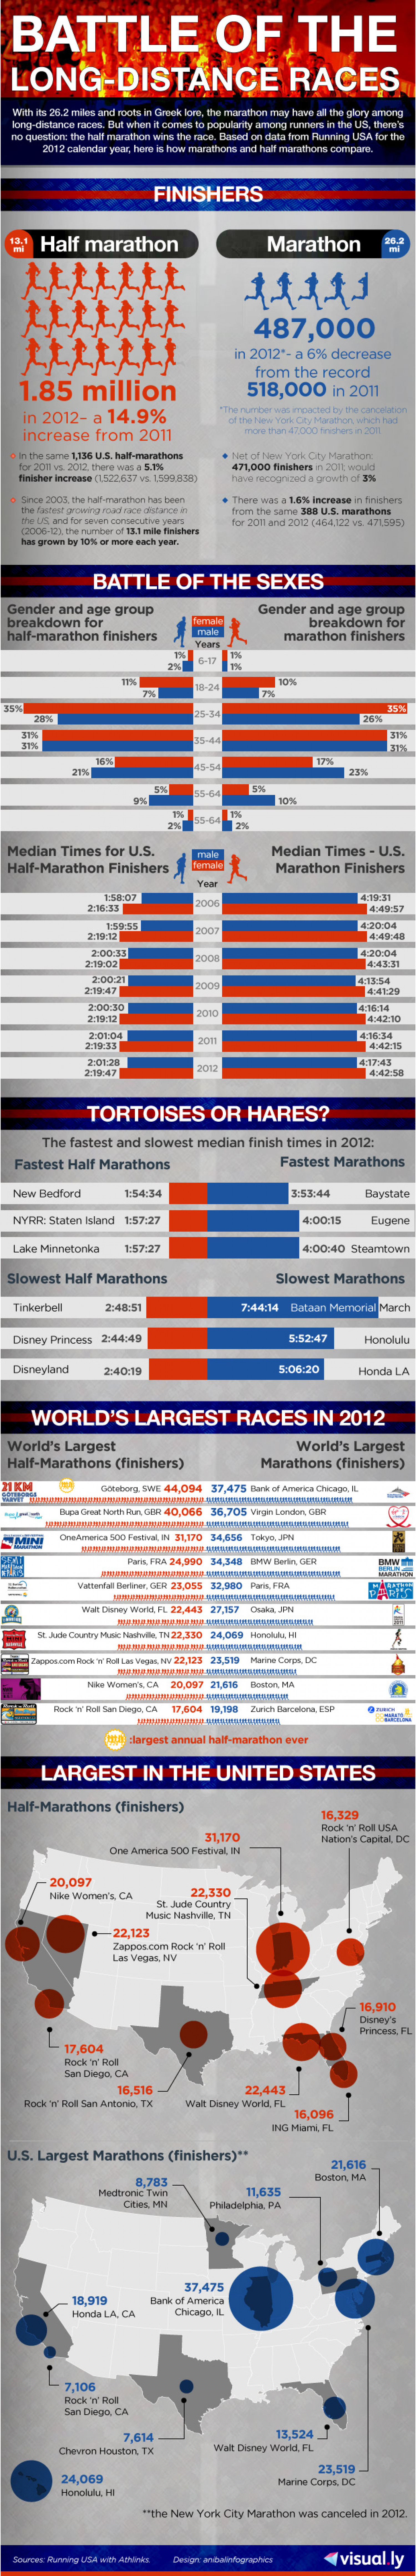 Battle of the Long Distance Races Infographic